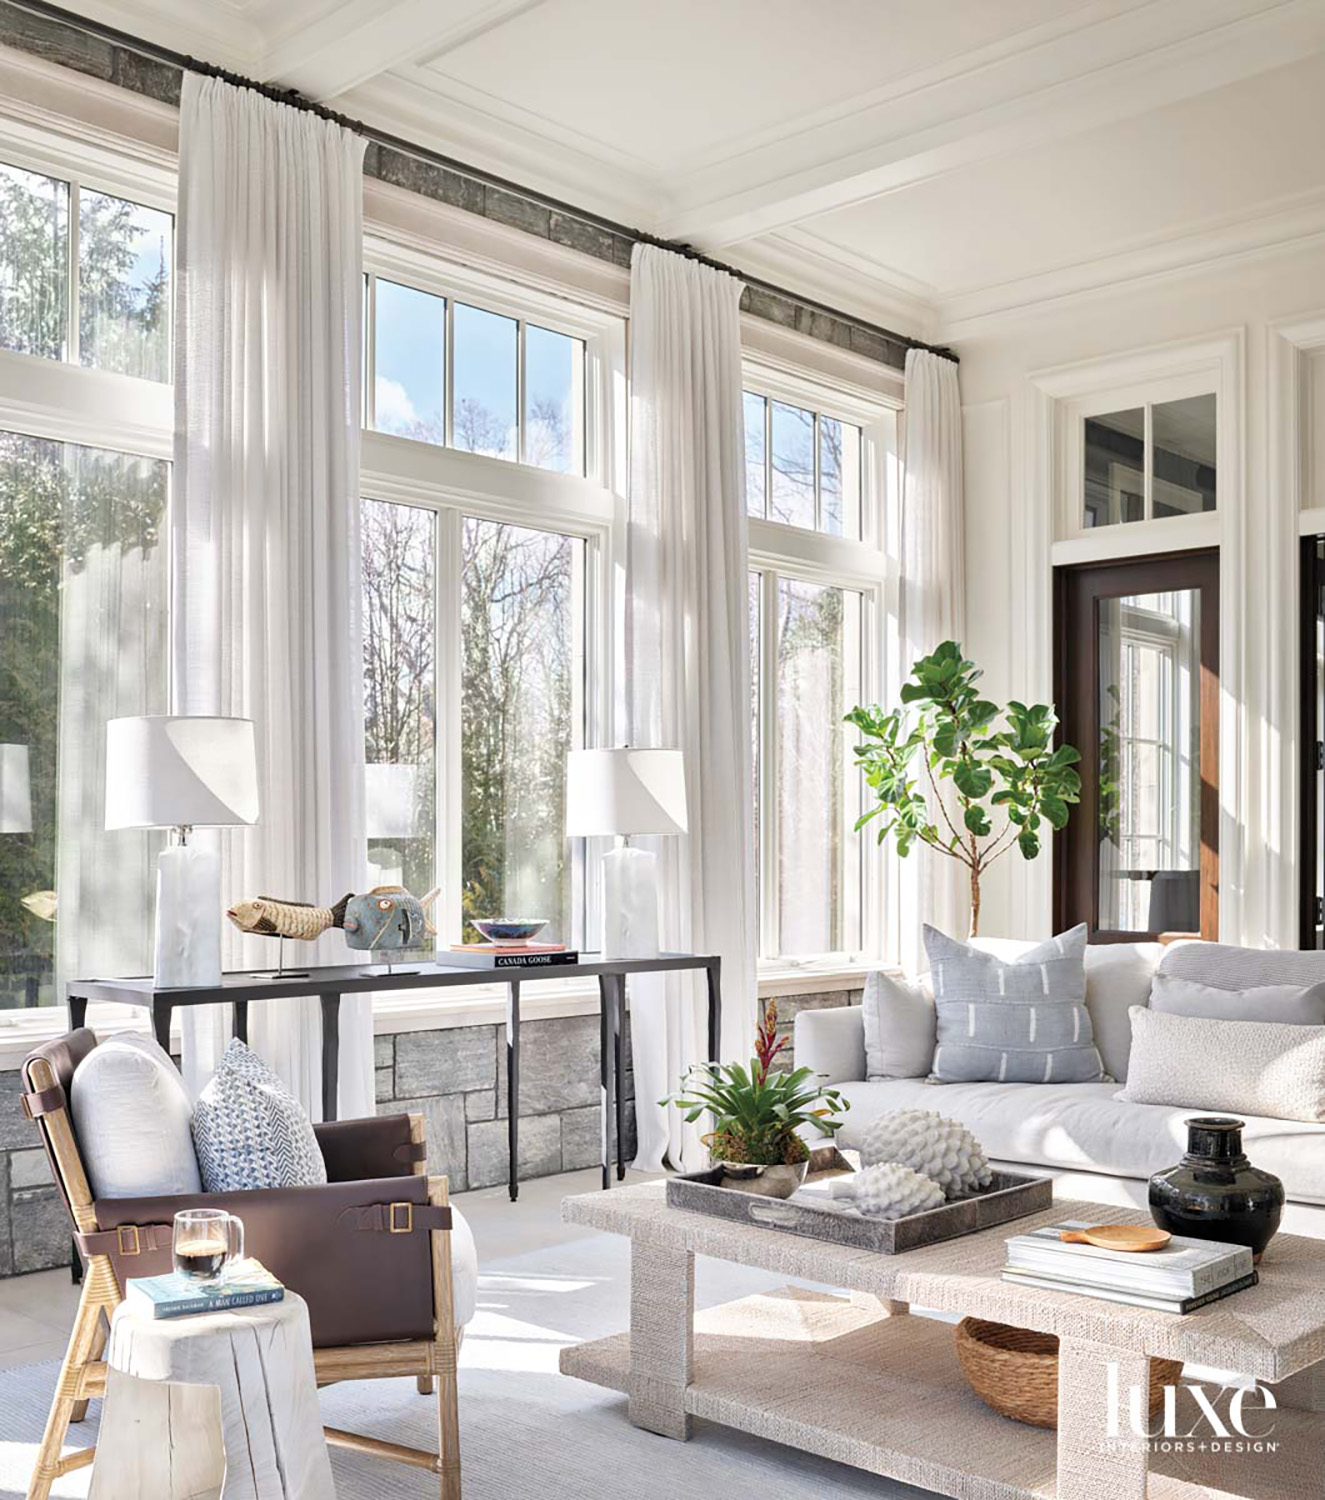 A sunroom with a light gray sofa, a brown leather chair and a textured coffee table.